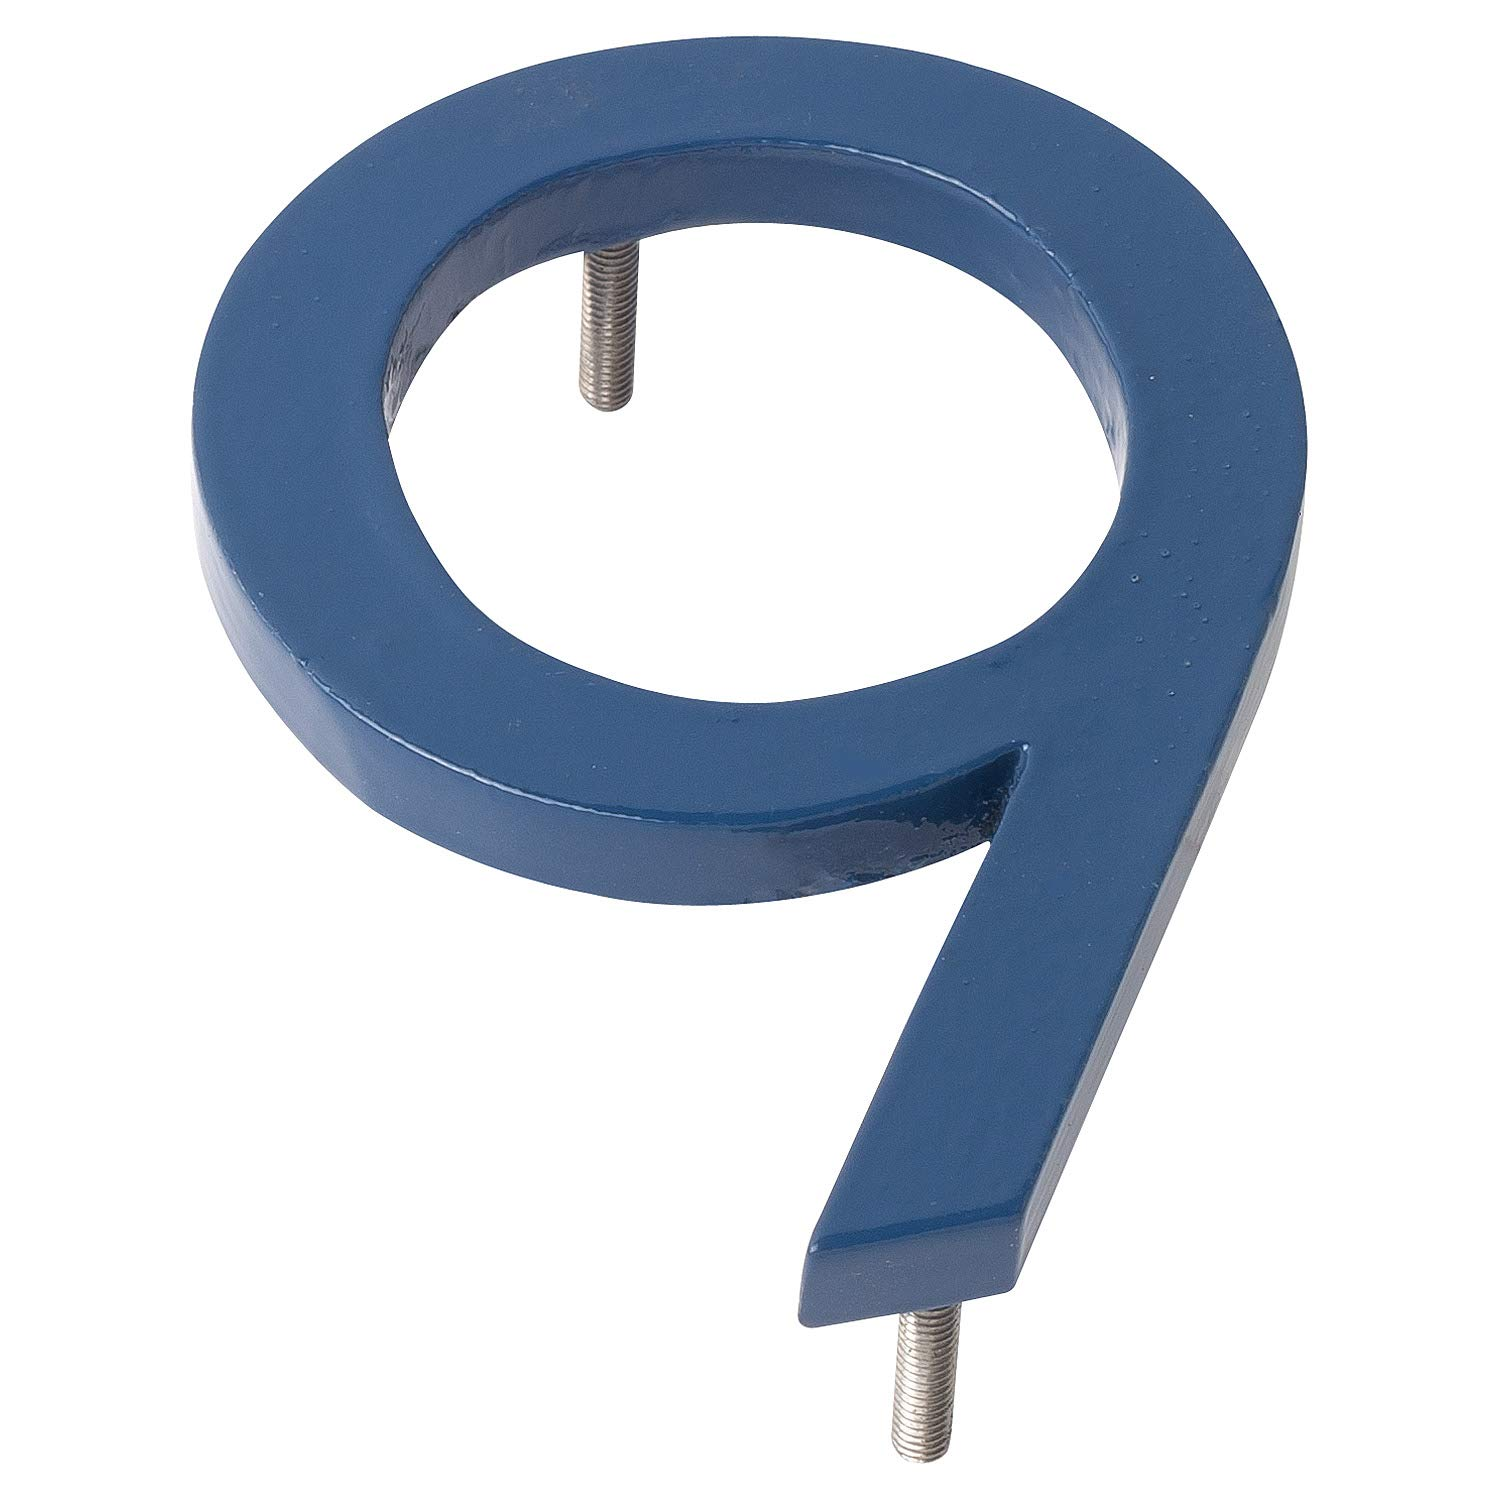 Montague Metal Products MHN-08-9-F-SB1 Floating House Number, 8'' x 5.81'' x 0.375'' Sea Blue